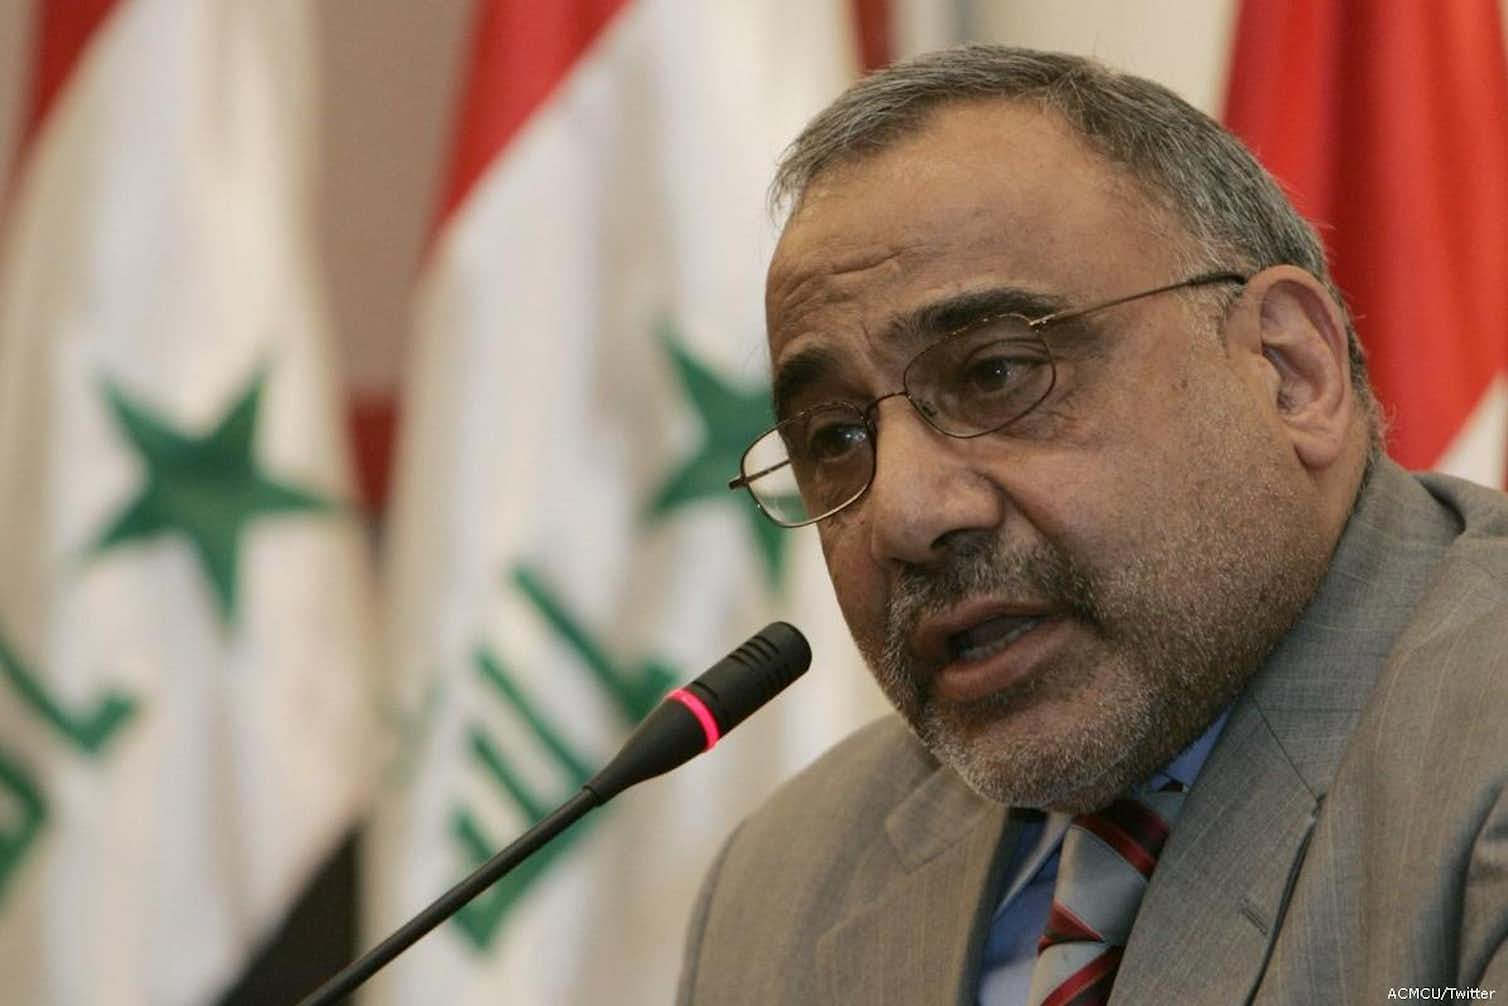 Iraqi Prime Minister Adel Abdul Mahdi leads a Shia-dominated government. Photo credit: ACMCU/Twitter, CC BY